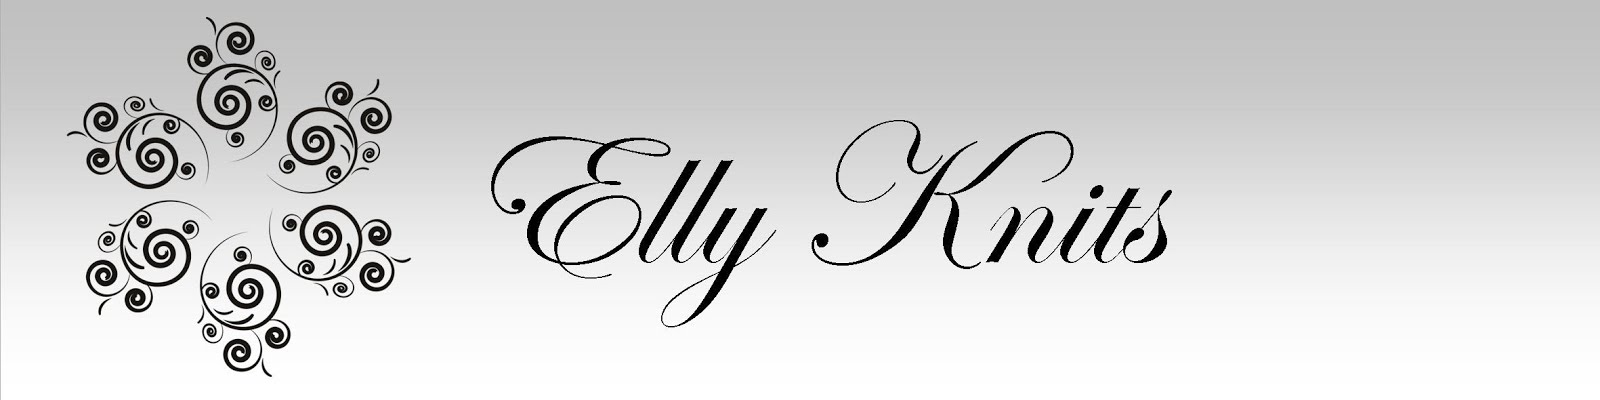 Elly Knits